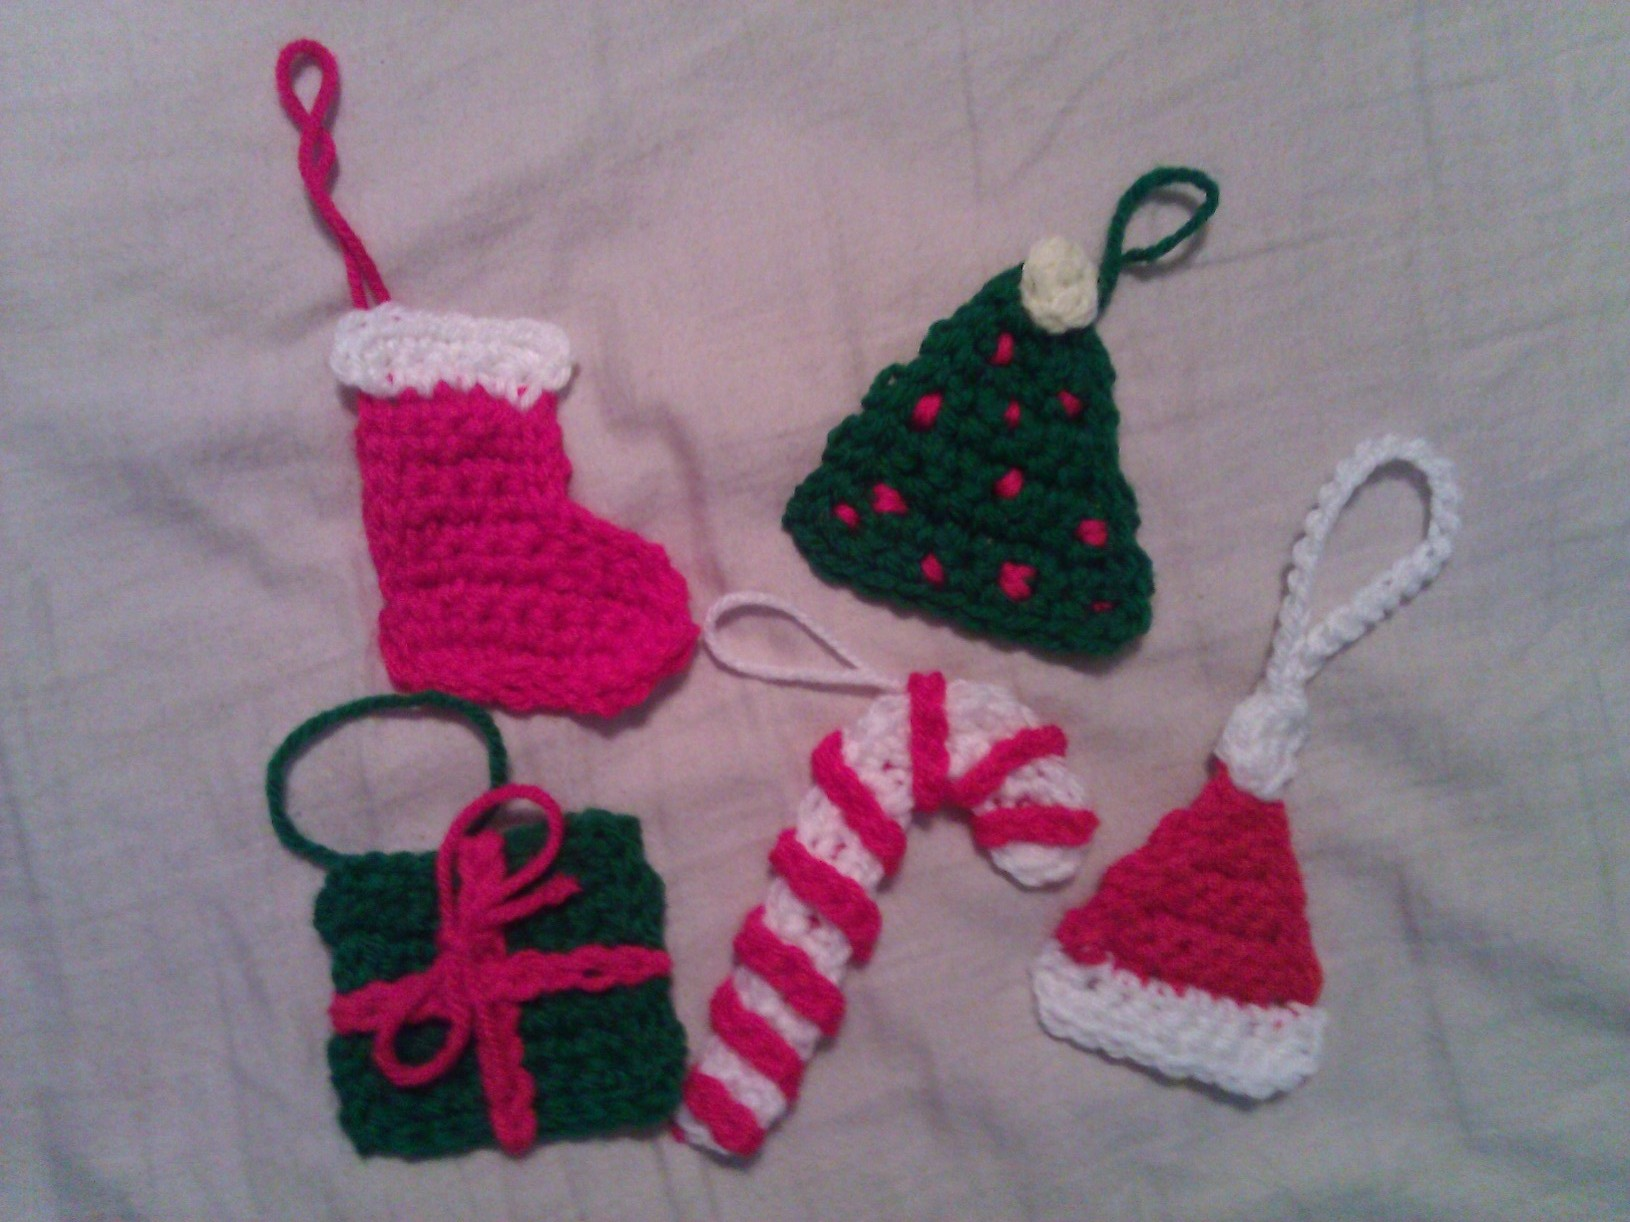 Free Thread Crochet Christmas Ornaments Patterns : Stocking Christmas Ornament Crochet Pattern cRAfterchick ...